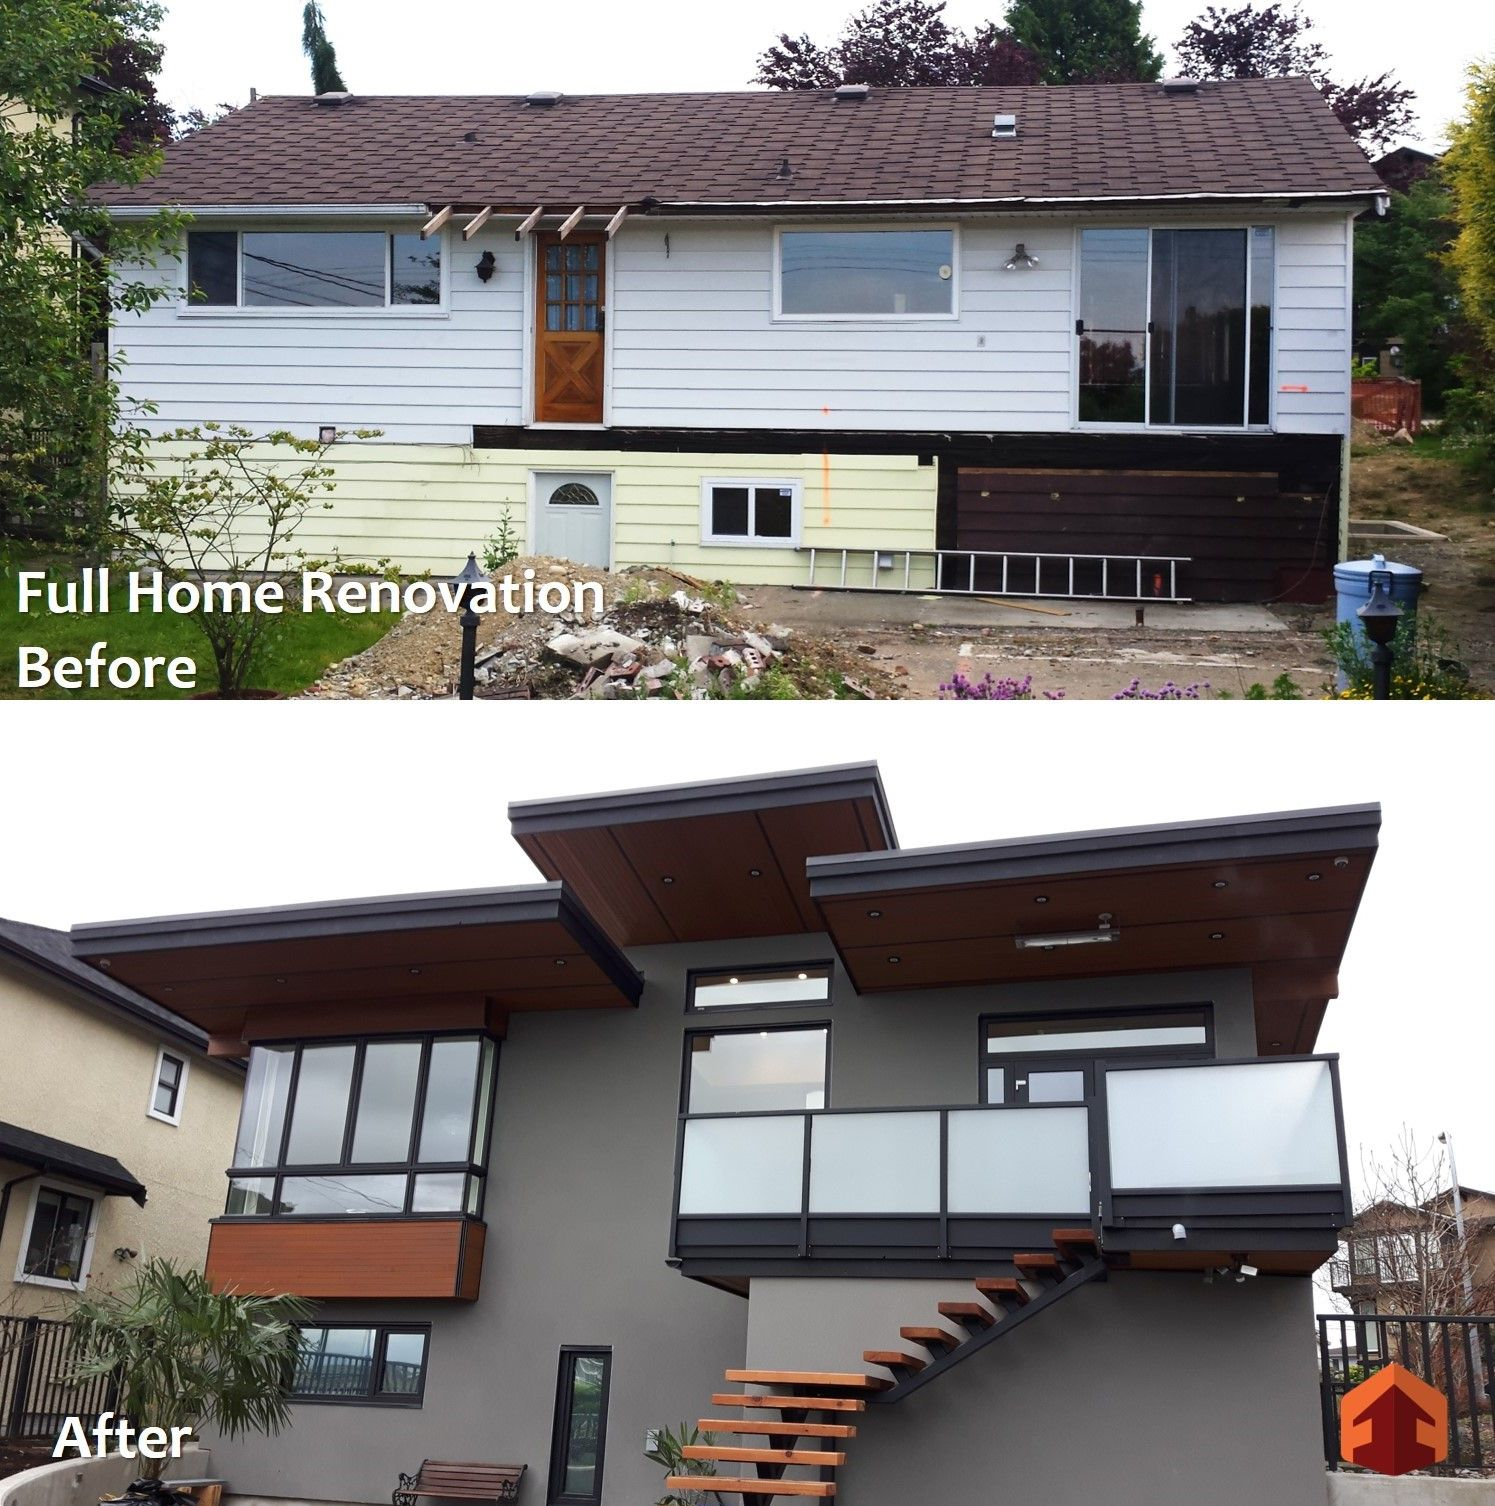 Full Home Renovation Before And After